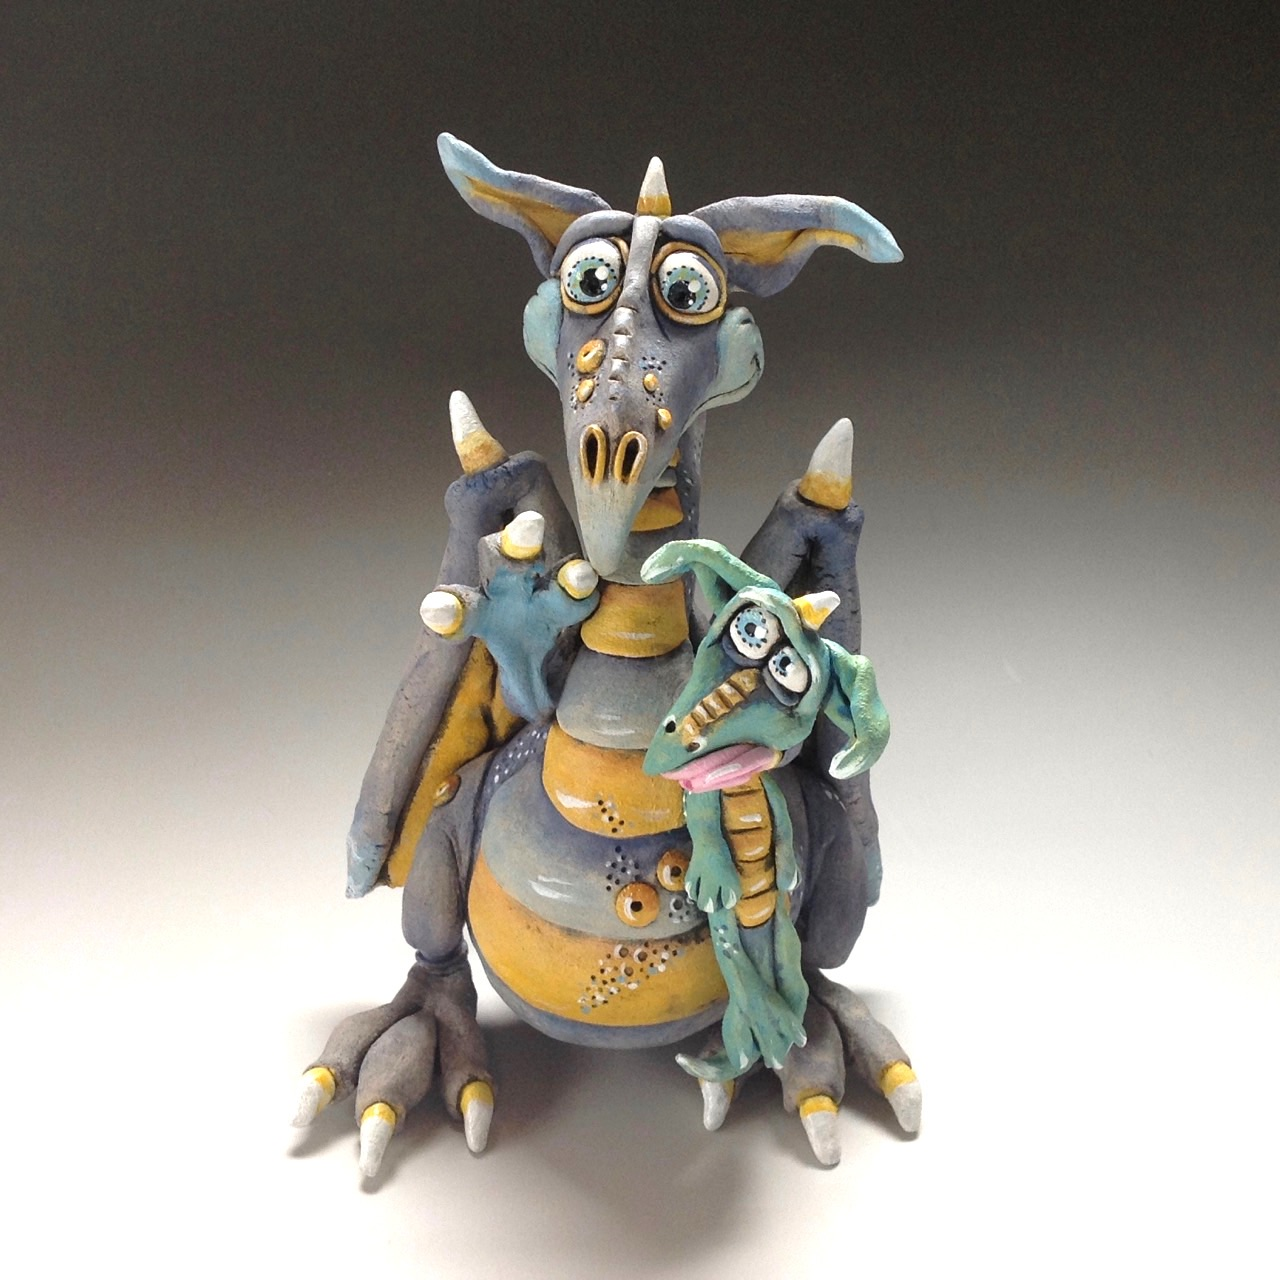 Dragon and Baby Sculpture Ceramic Pottery